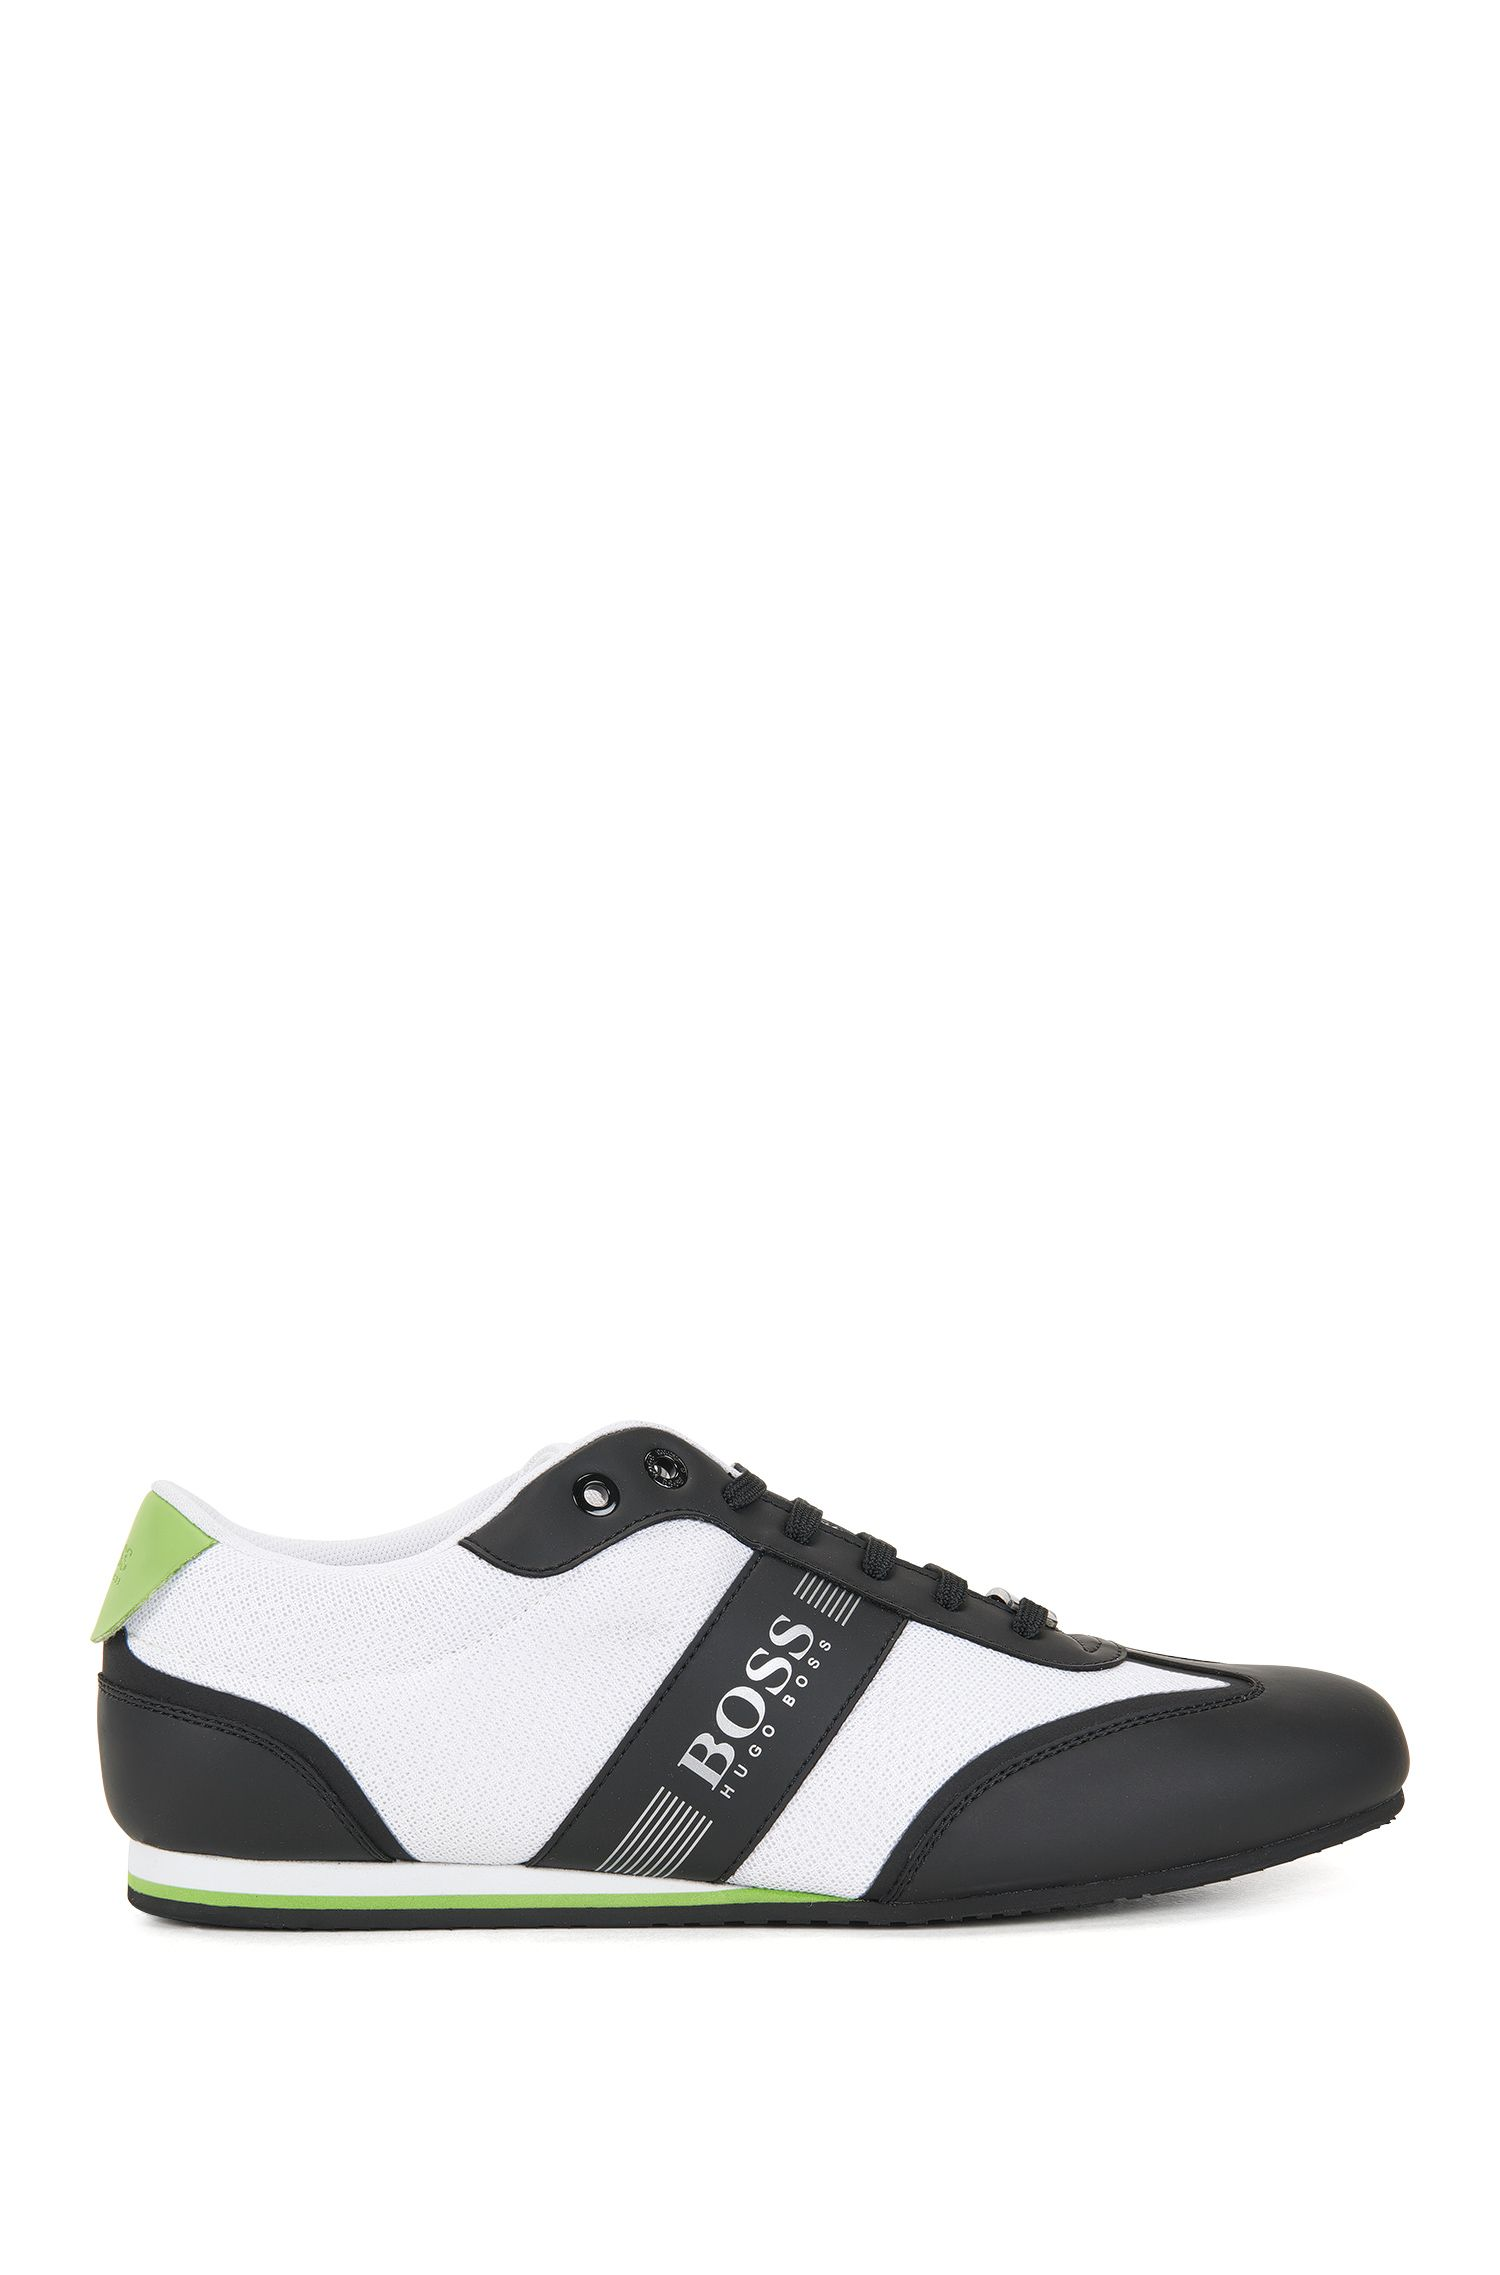 Mesh Sneaker | Lighter Lowp Mxme